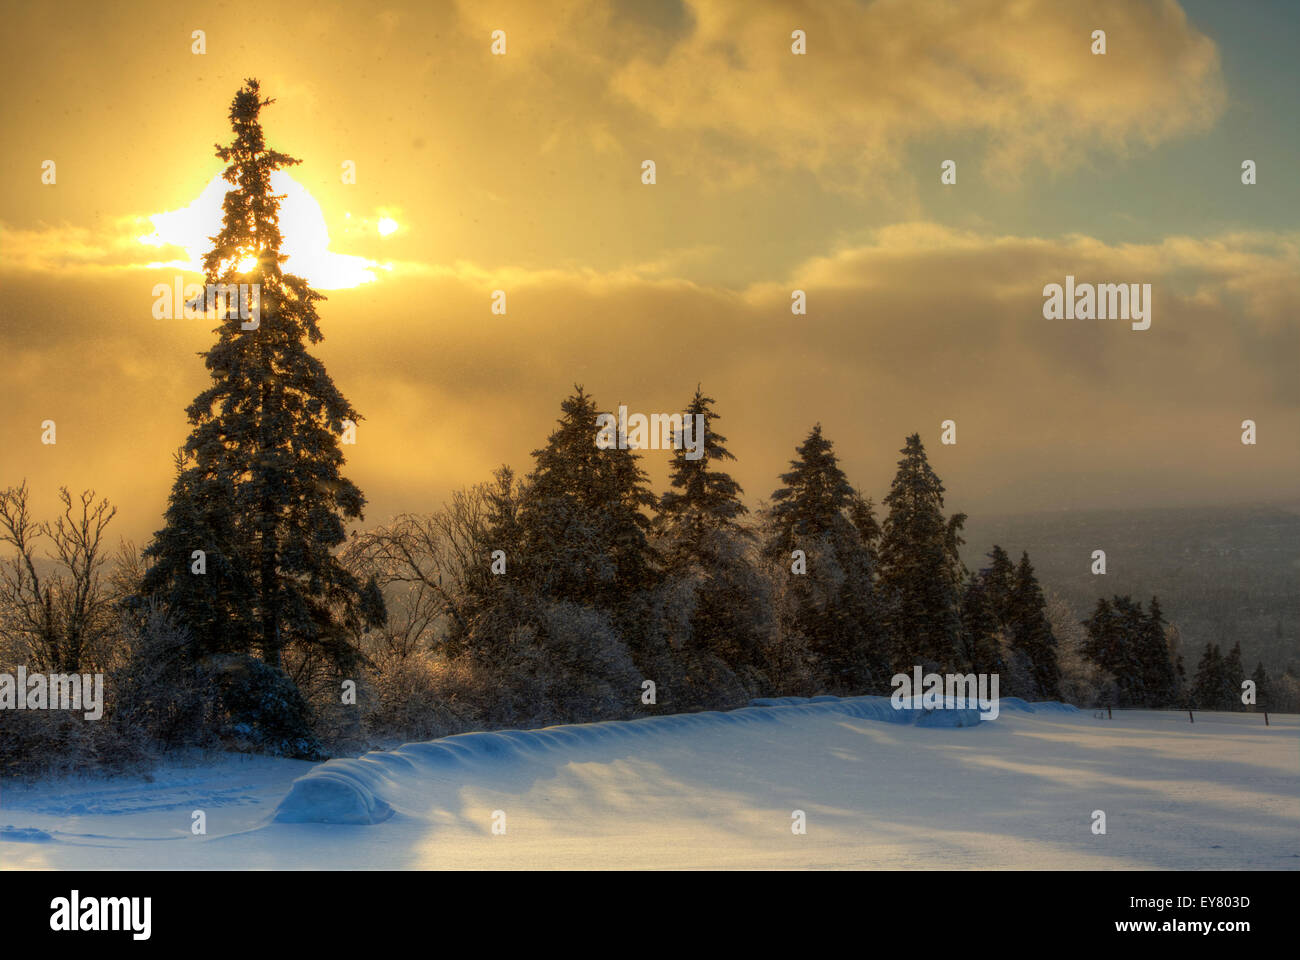 HDR image of a late afternoon sun and snow shower in New Brunswick, Canada. - Stock Image